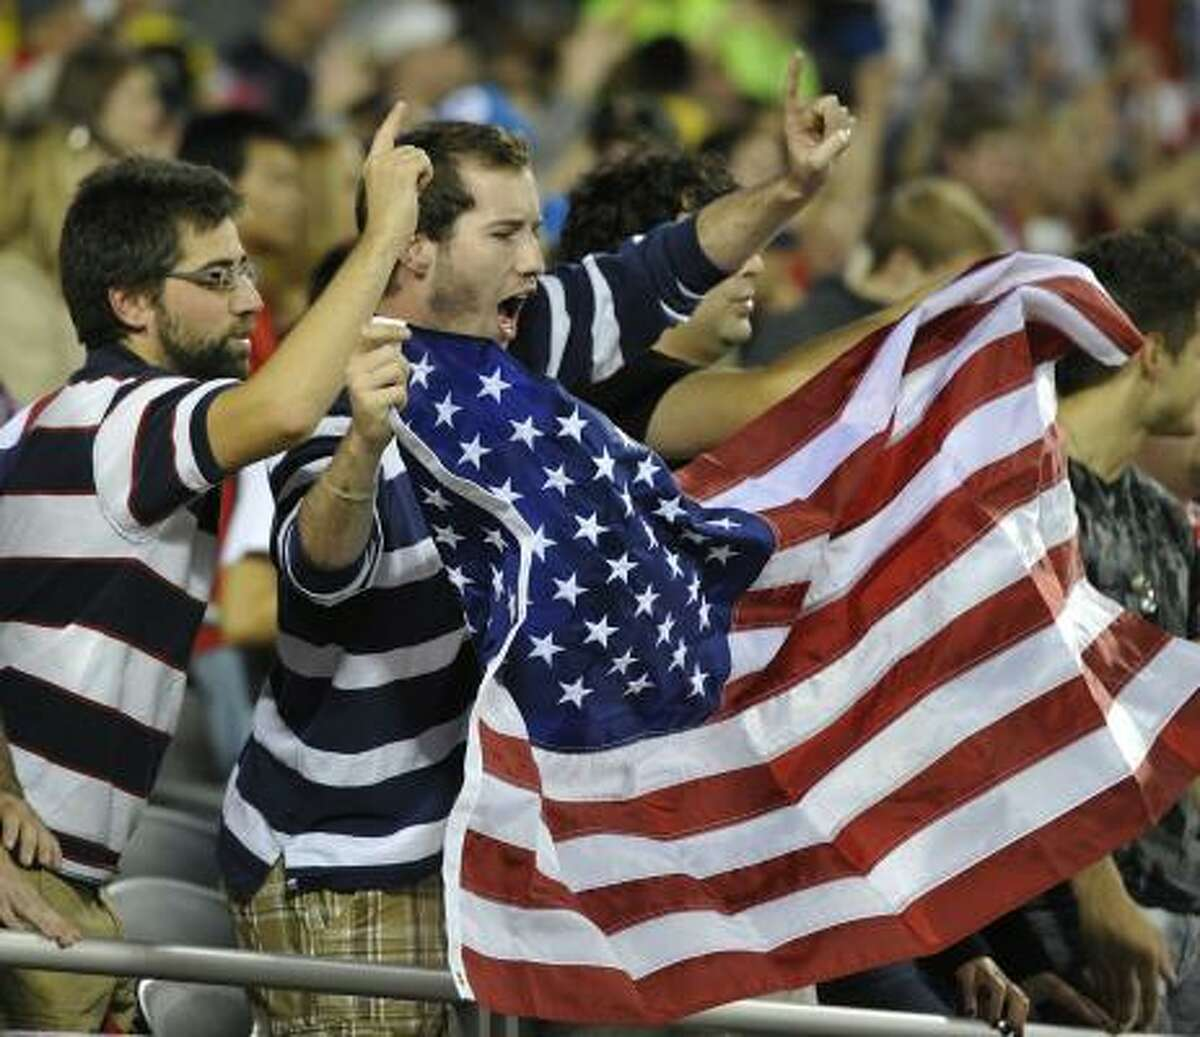 Fans of the USA soccer team cheer the players on during a friendly match against Poland.